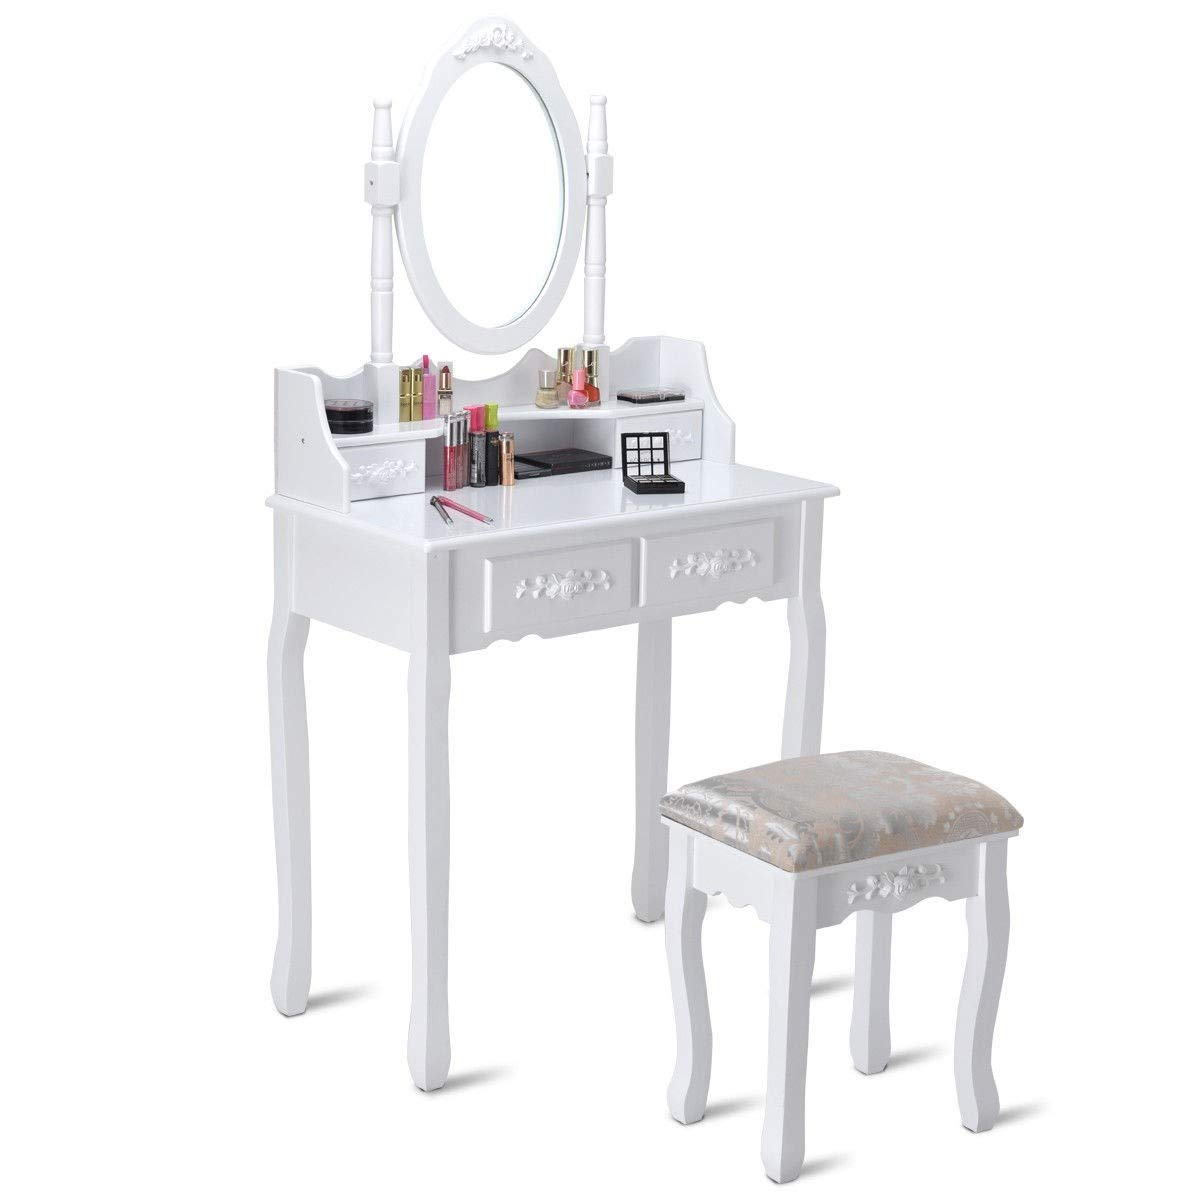 Kanizz Durable Vintage Furniture Vanity Wood Makeup Dressing Table Stool Set 4 Drawer Jewelry Accessories Skin Hair Care Dressing Nail Polish Equipment Cosmetic Organizer